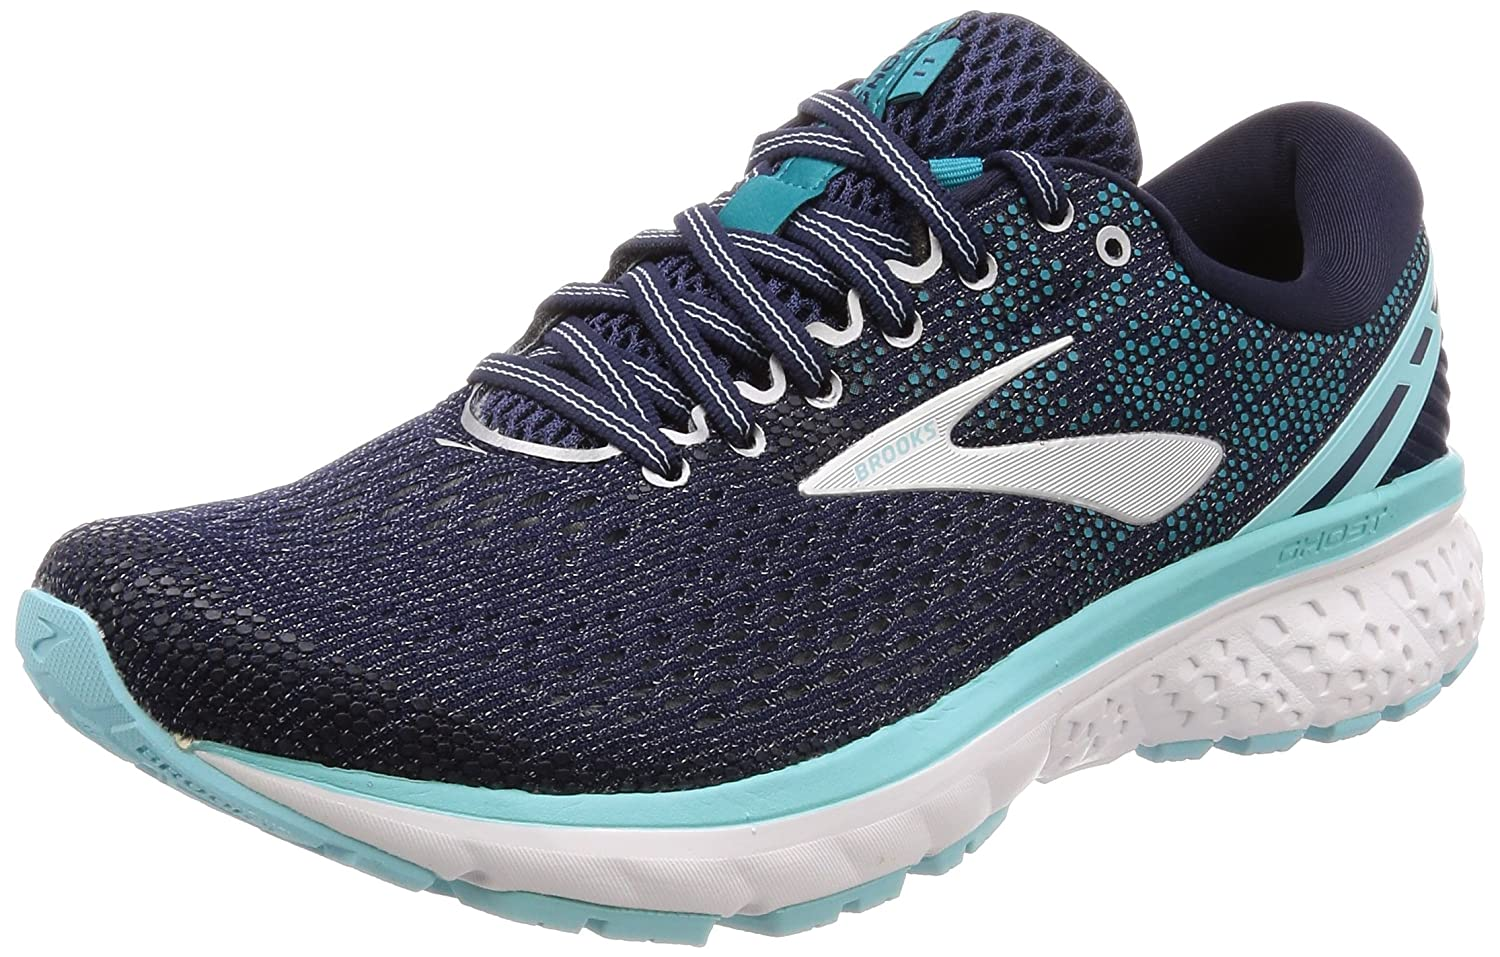 Brooks Womens Ghost 11 Running Shoe B077QN3LCV 8 B(M) US|Navy/Grey/Blue